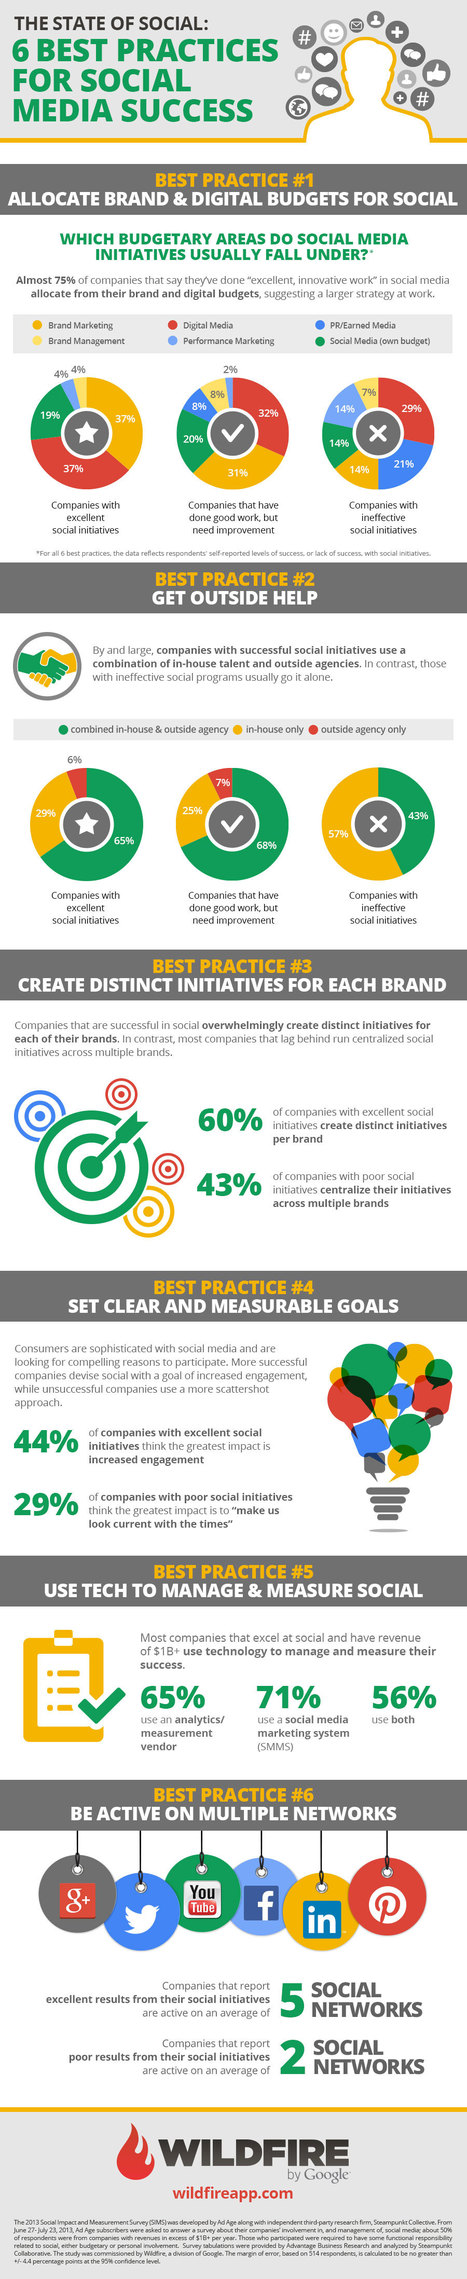 The State of Social: An Infographic of 6 Best Practices | Social media! | Scoop.it